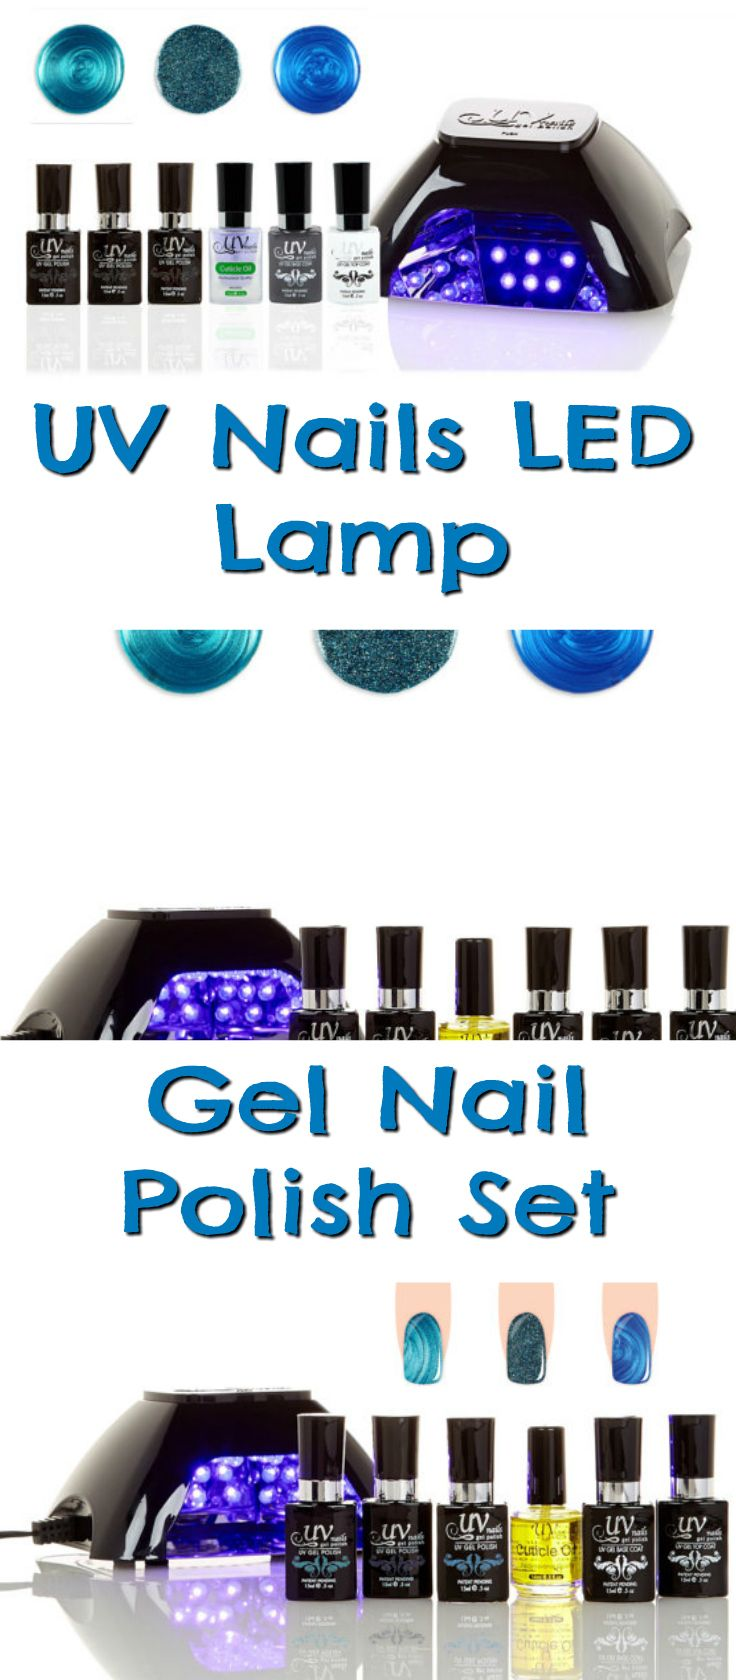 The UV nails LED lamp gel nail polish set is the best way to get salon looking nails without the huge price tag #afflink